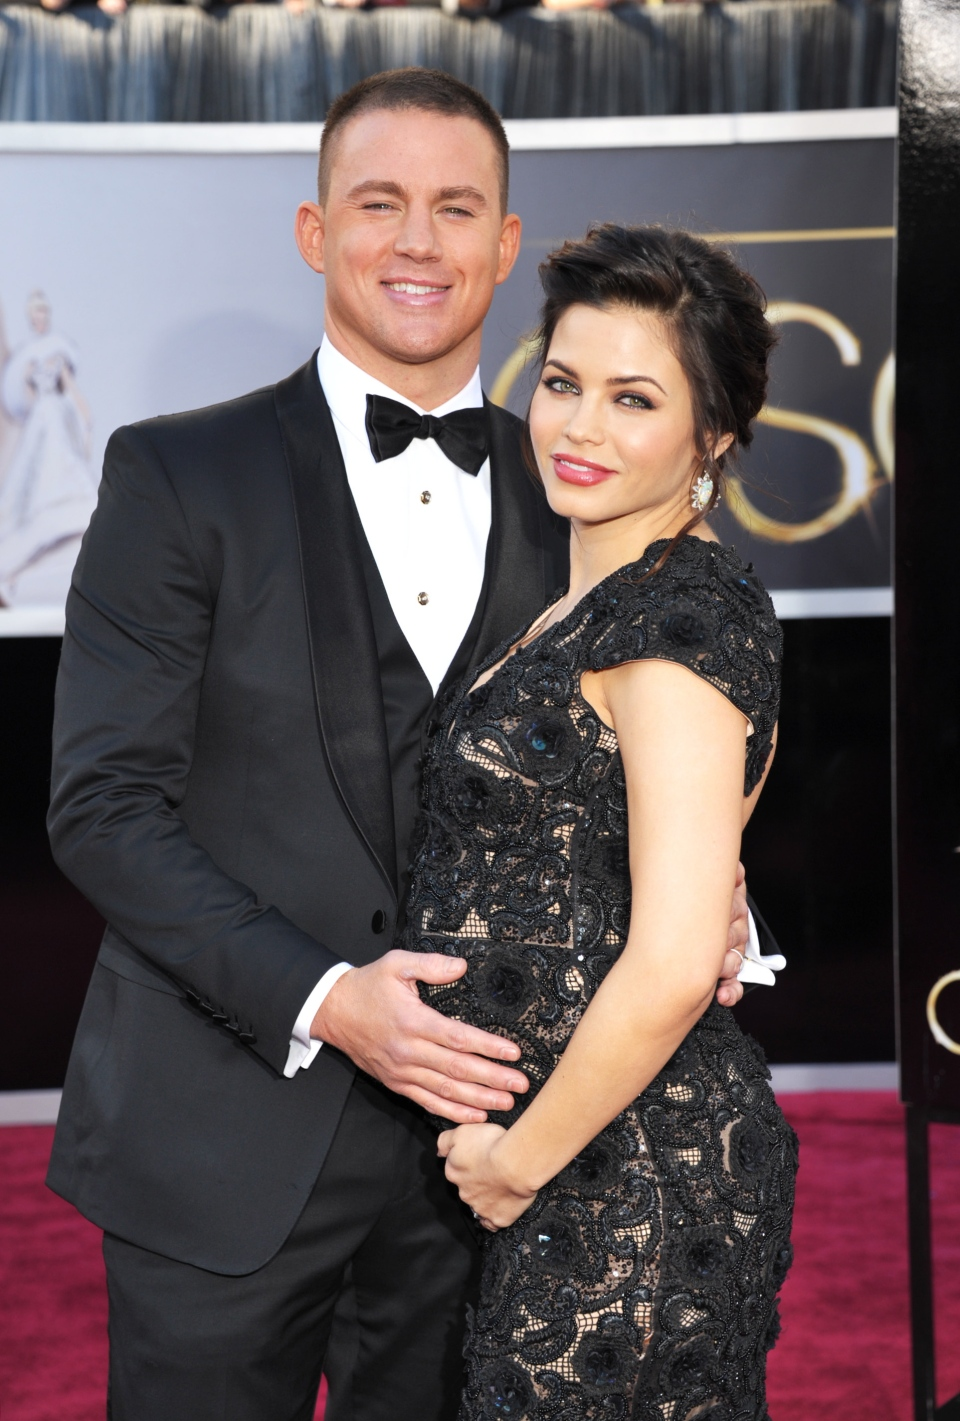 Channing Tatum and Jenna Dewan-Tatum name daughter Everly